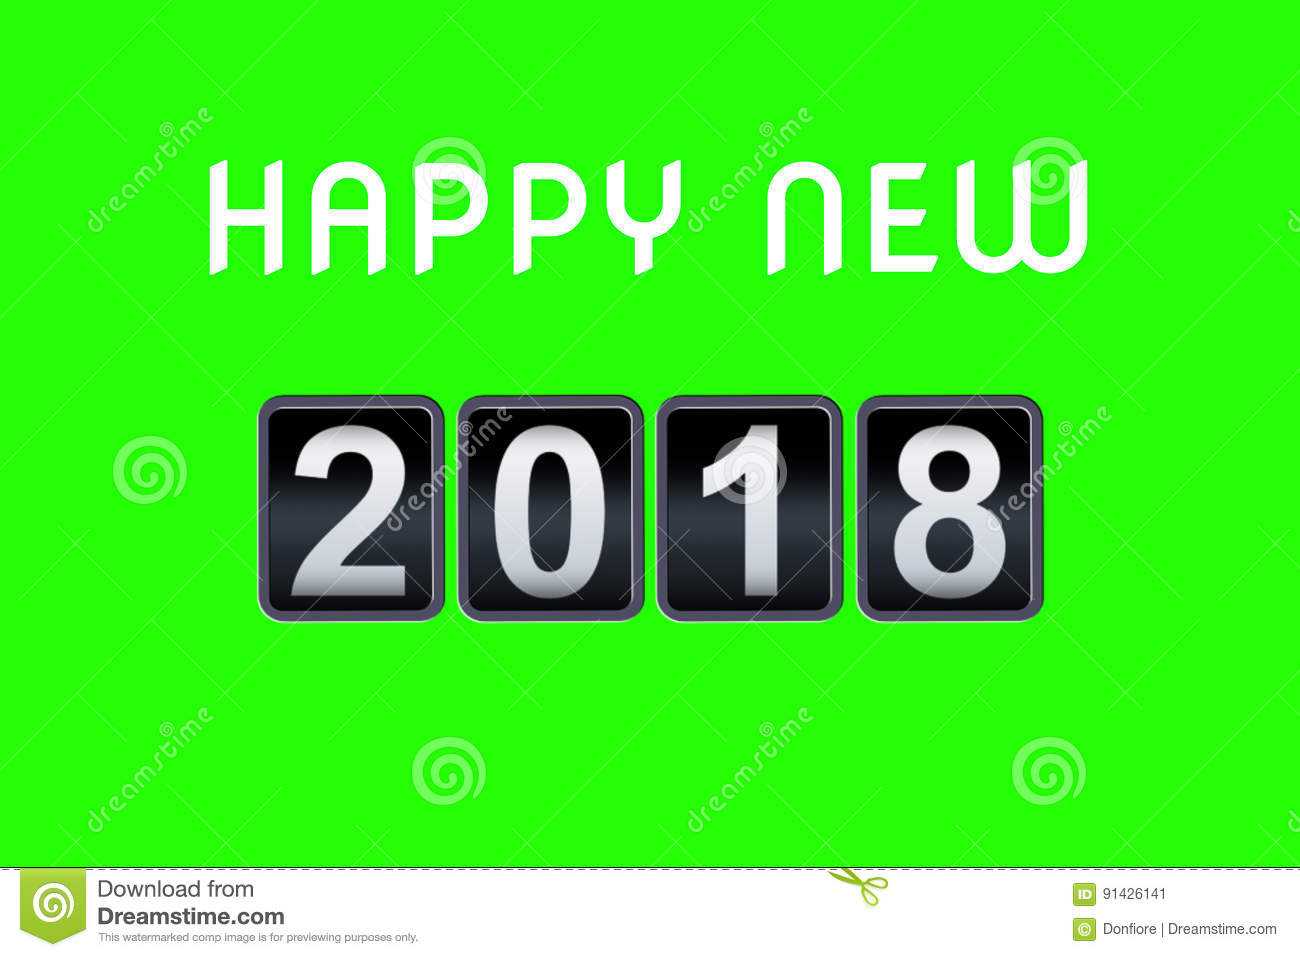 2017 2018 happy new year concept vintage analog counter countdown timer, retro flip number counter from 2017 to 2018 year